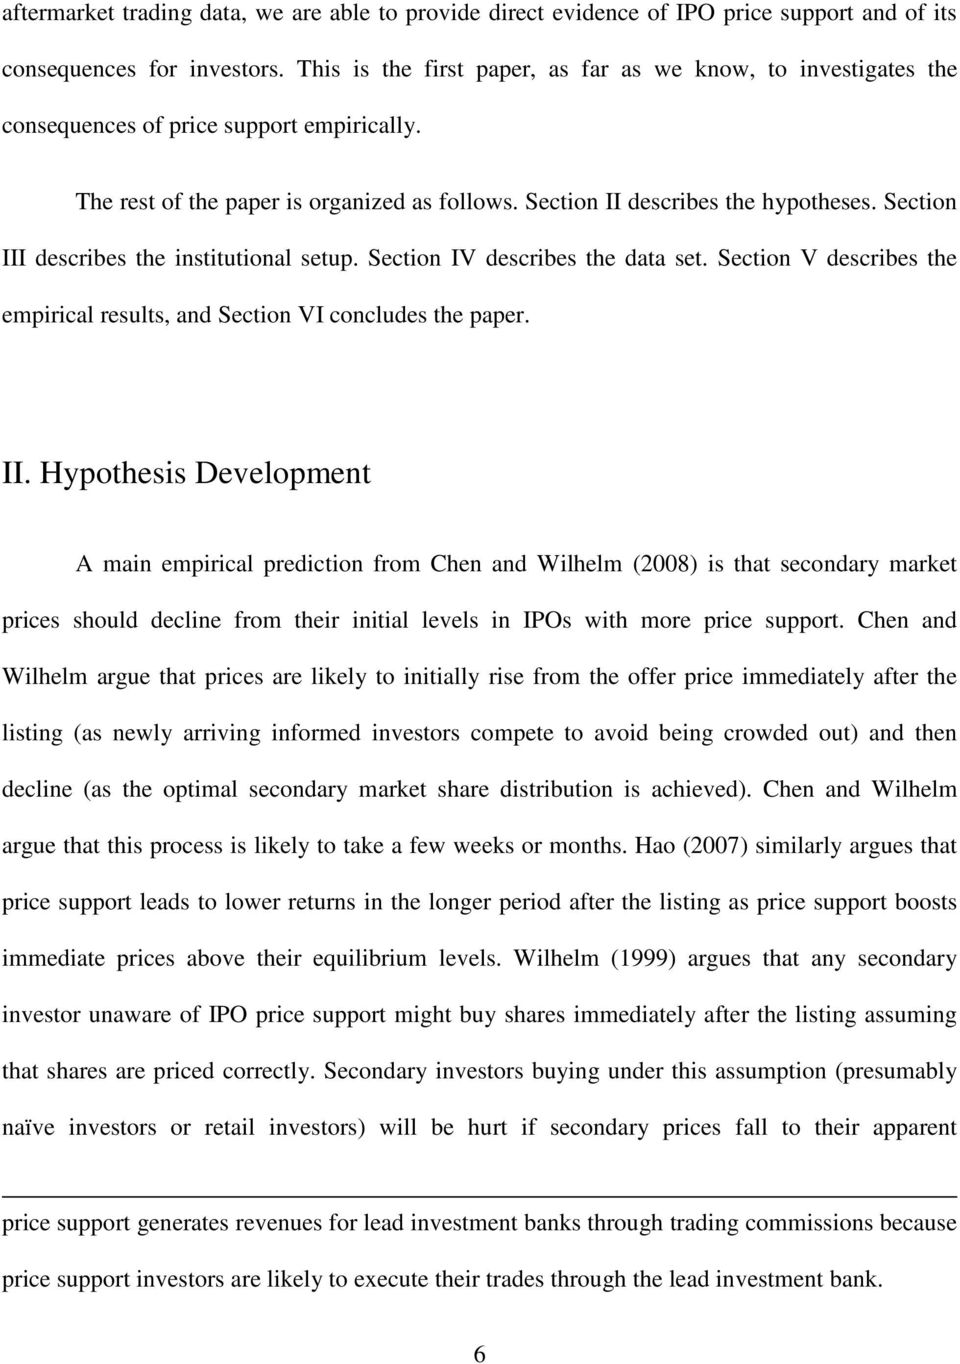 Section III describes the institutional setup. Section IV describes the data set. Section V describes the empirical results, and Section VI concludes the paper. II. Hypothesis Development A main empirical prediction from Chen and Wilhelm (2008) is that secondary market prices should decline from their initial levels in IPOs with more price support.